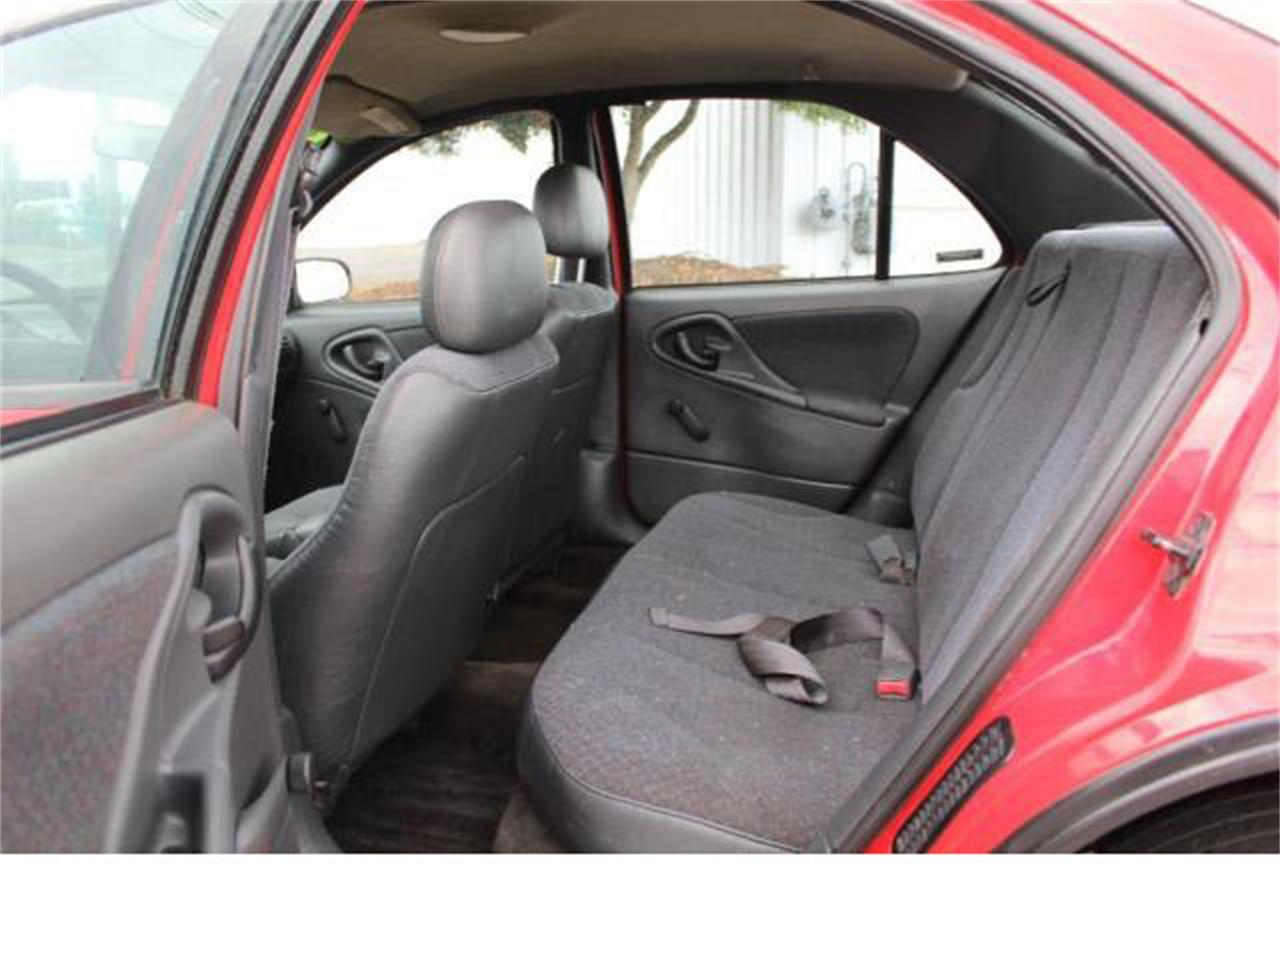 Large Picture of '98 Chevrolet Cavalier located in Tacoma Washington - $2,990.00 - M5PO